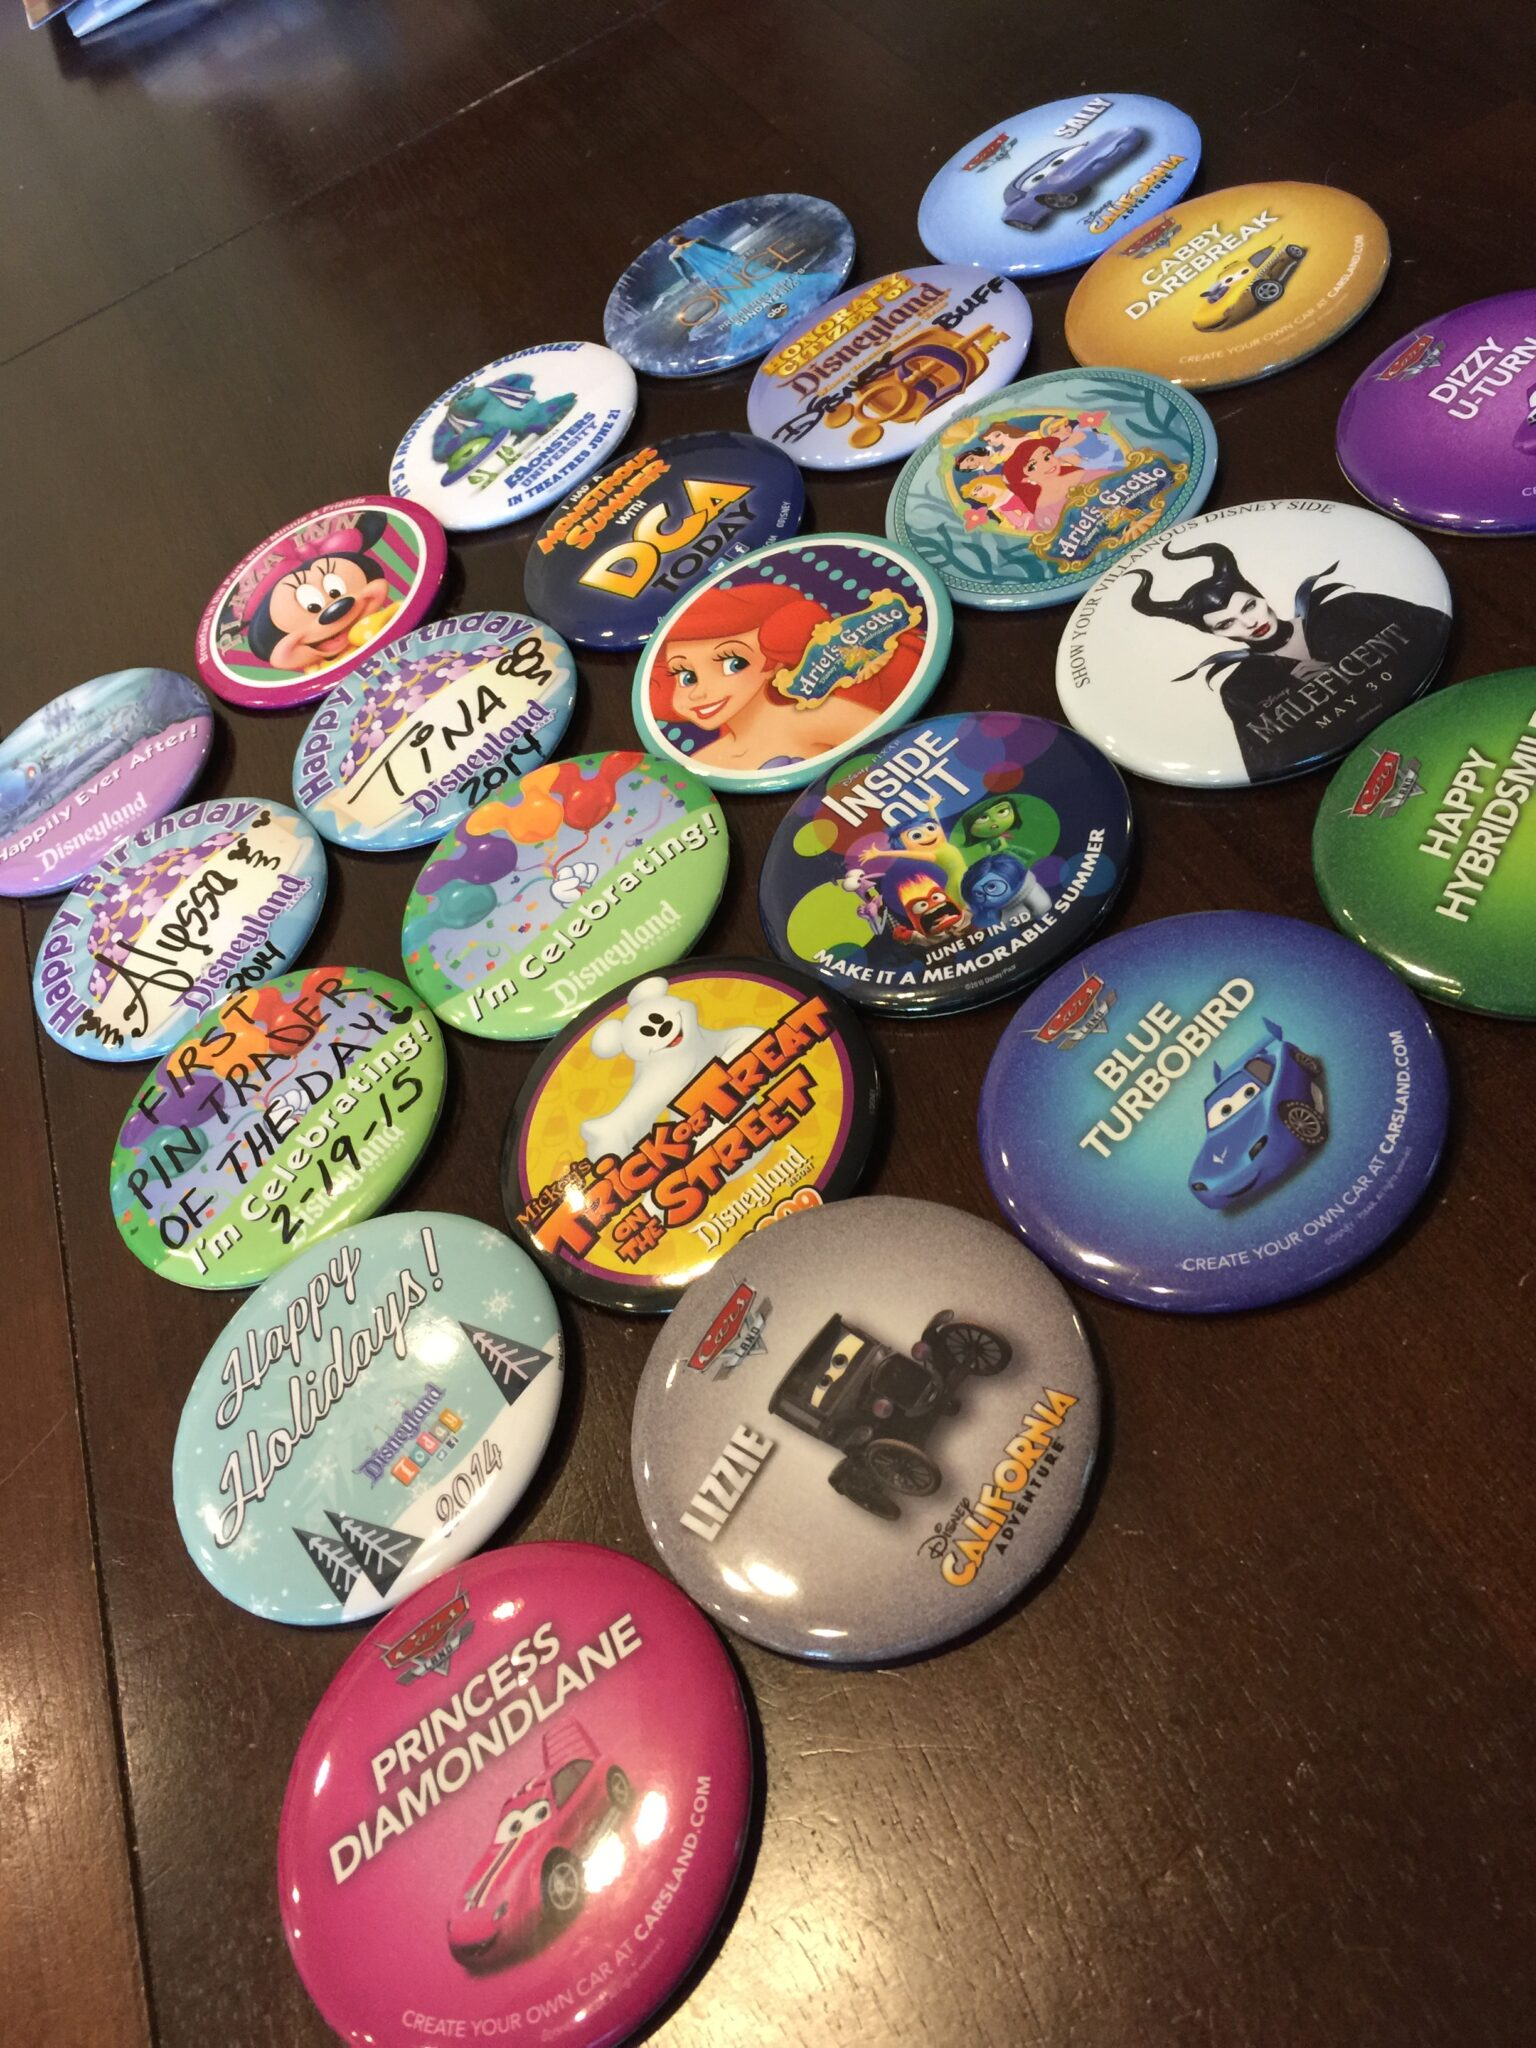 10 Free Souvenirs at Disneyland and DCA